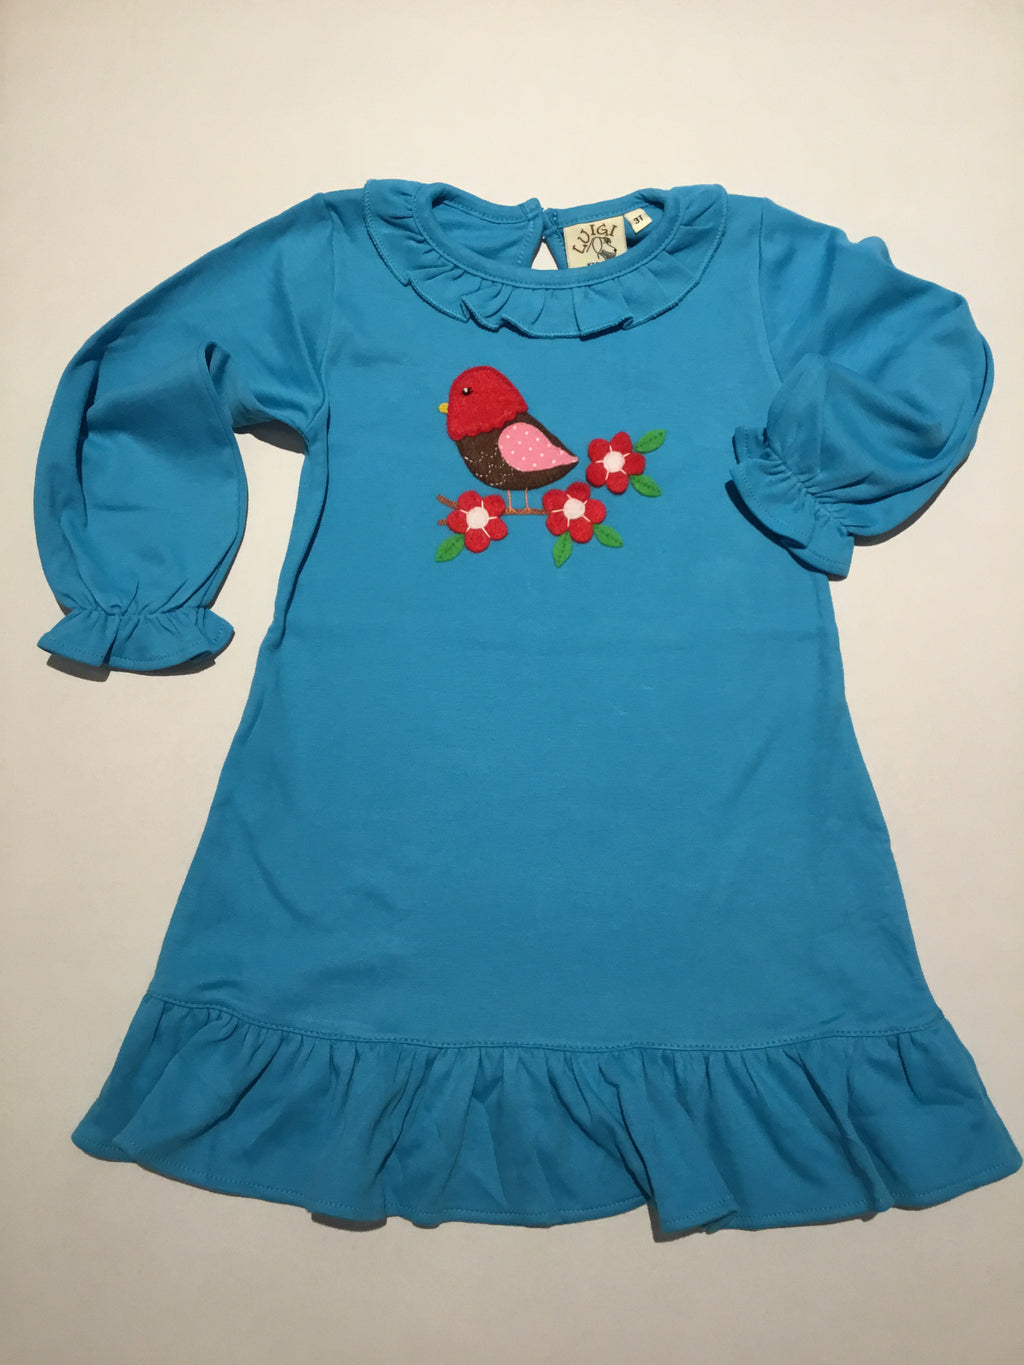 Red Bird on Turquoise Ruffle L.S.Dress